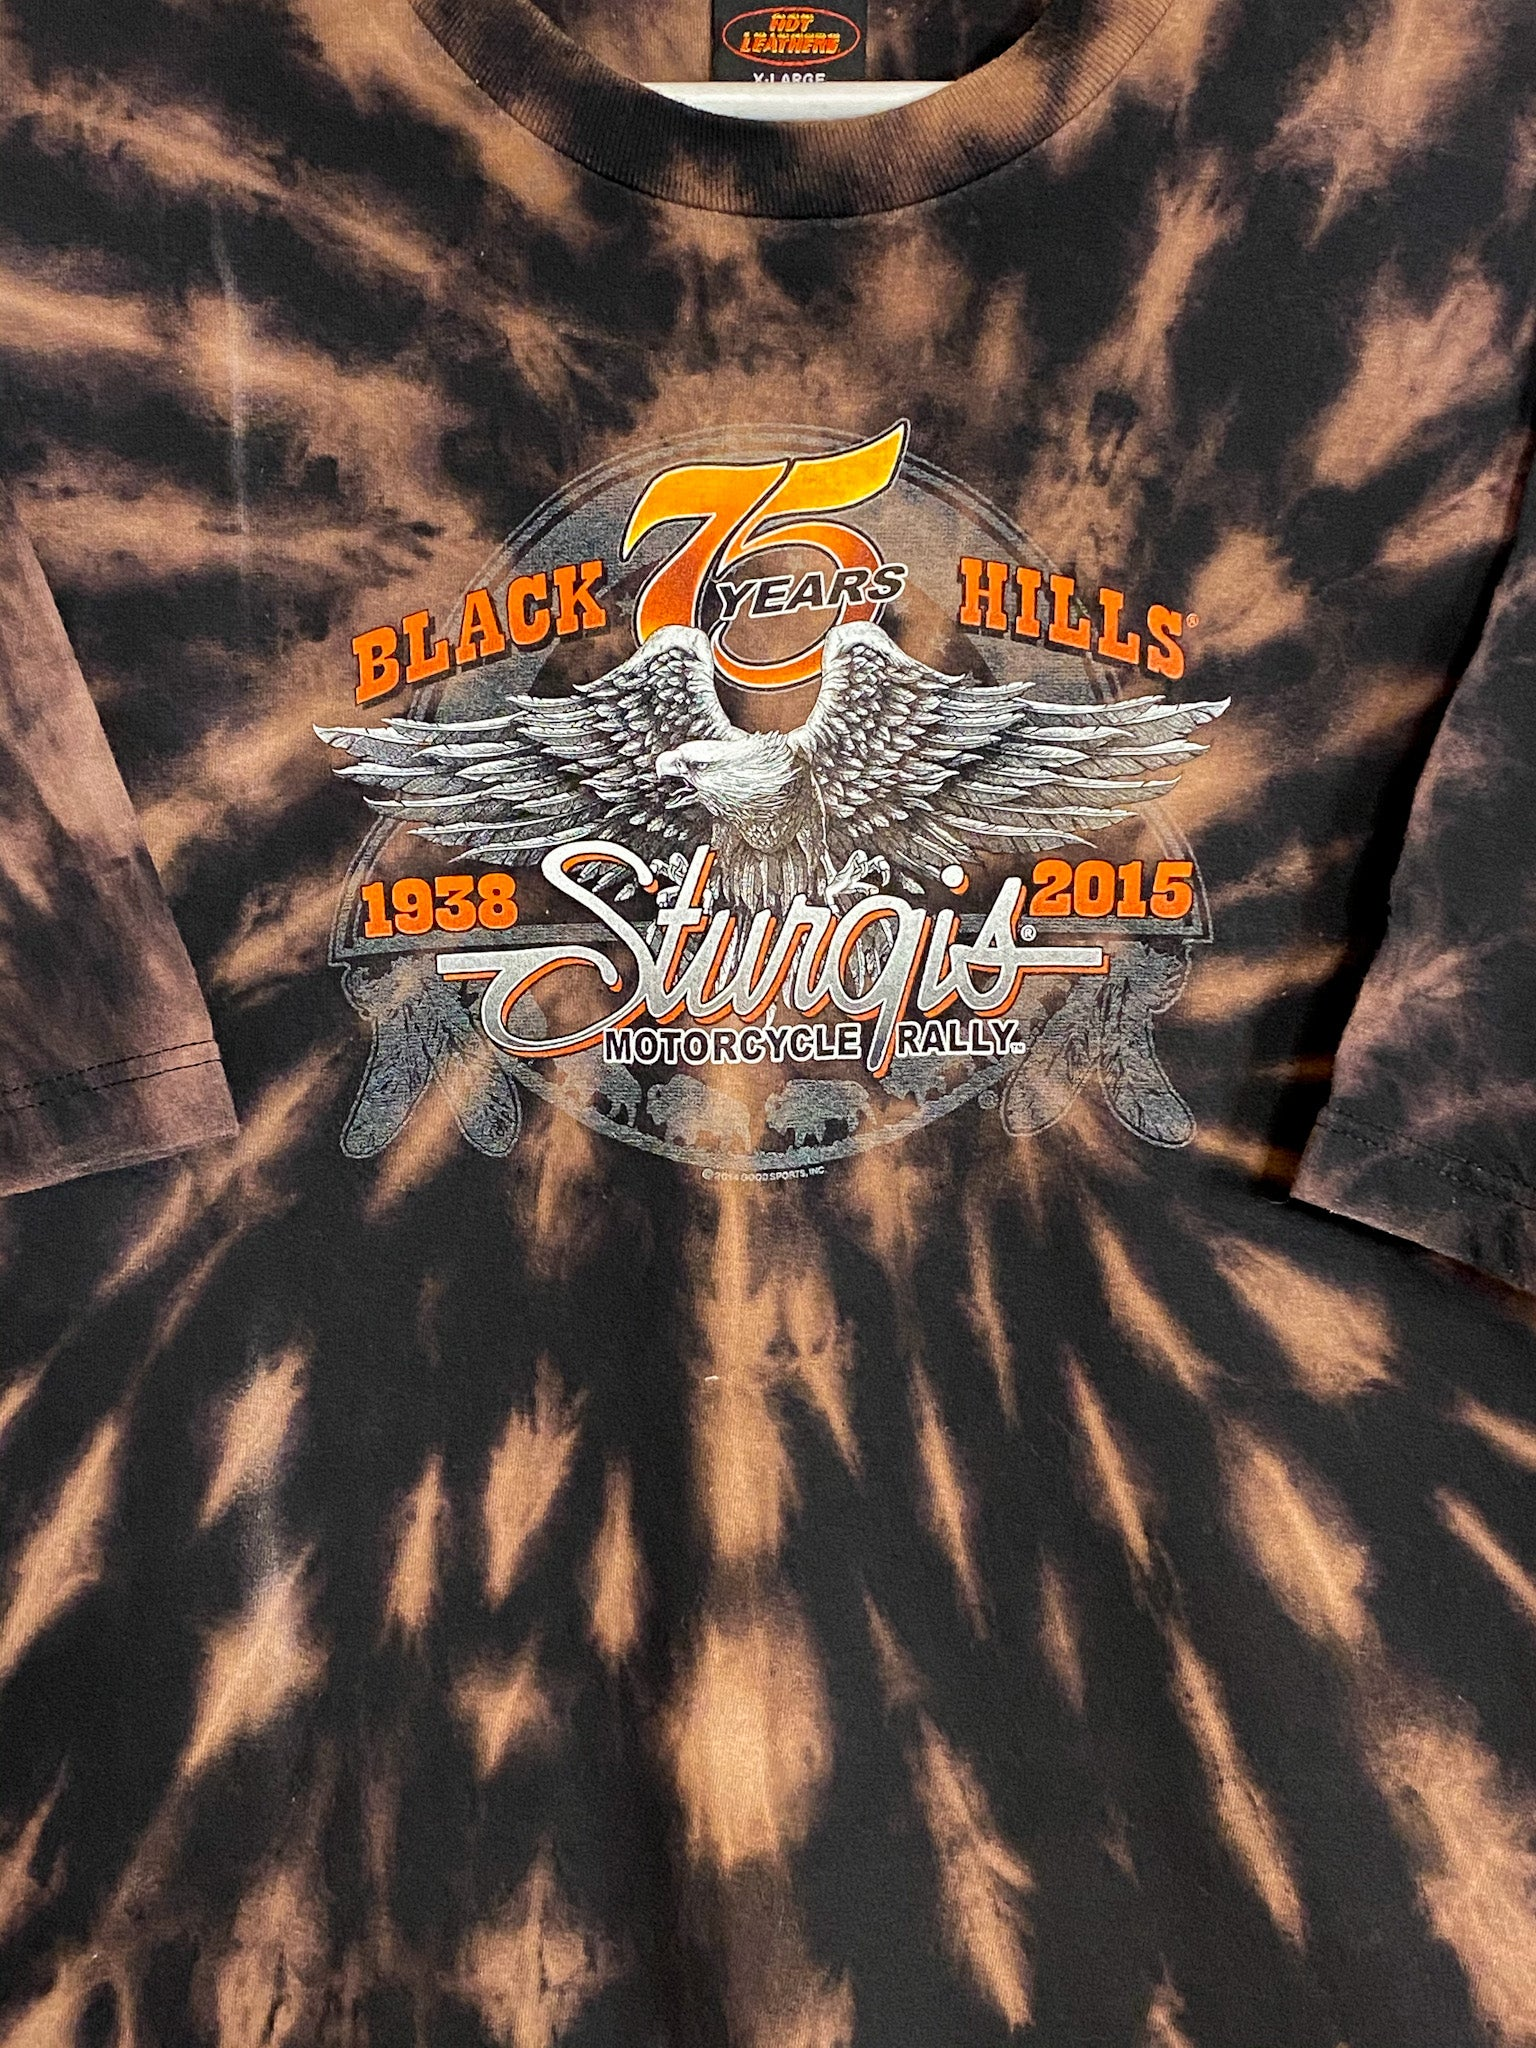 STURGIS MOTORCYCLE RALLY TEE (XL)